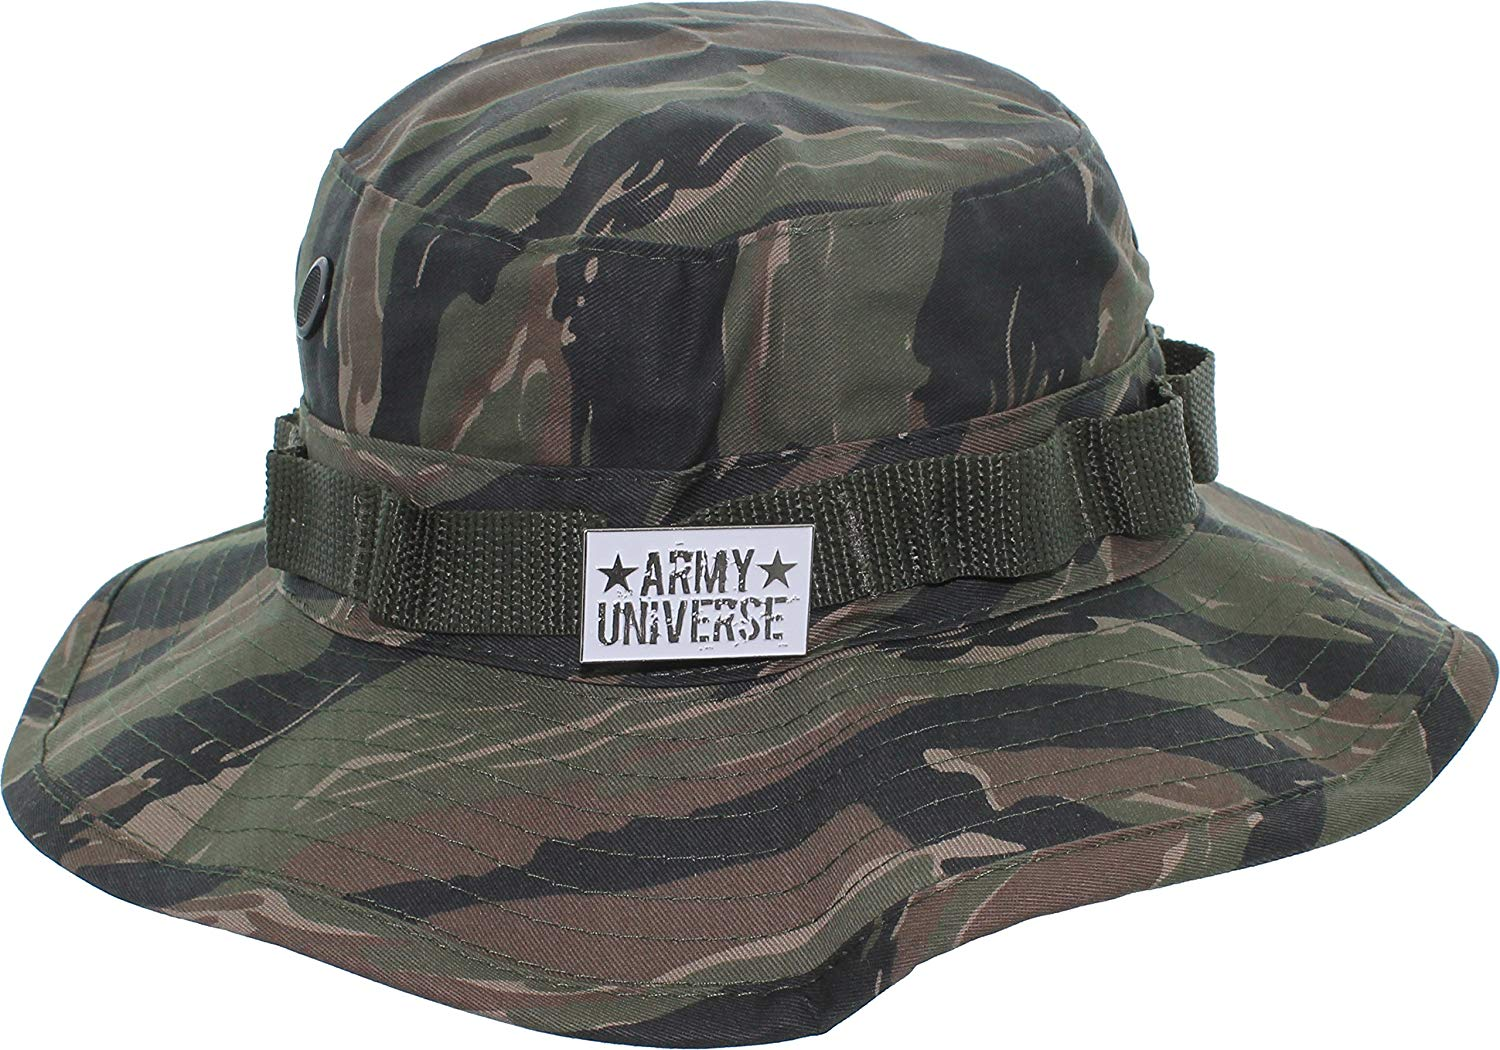 Army Universe Tactical Boonie Hat Military Camo Bucket Wide Brim Sun  Fishing Bush Booney Cap with 66e3e8afa3c